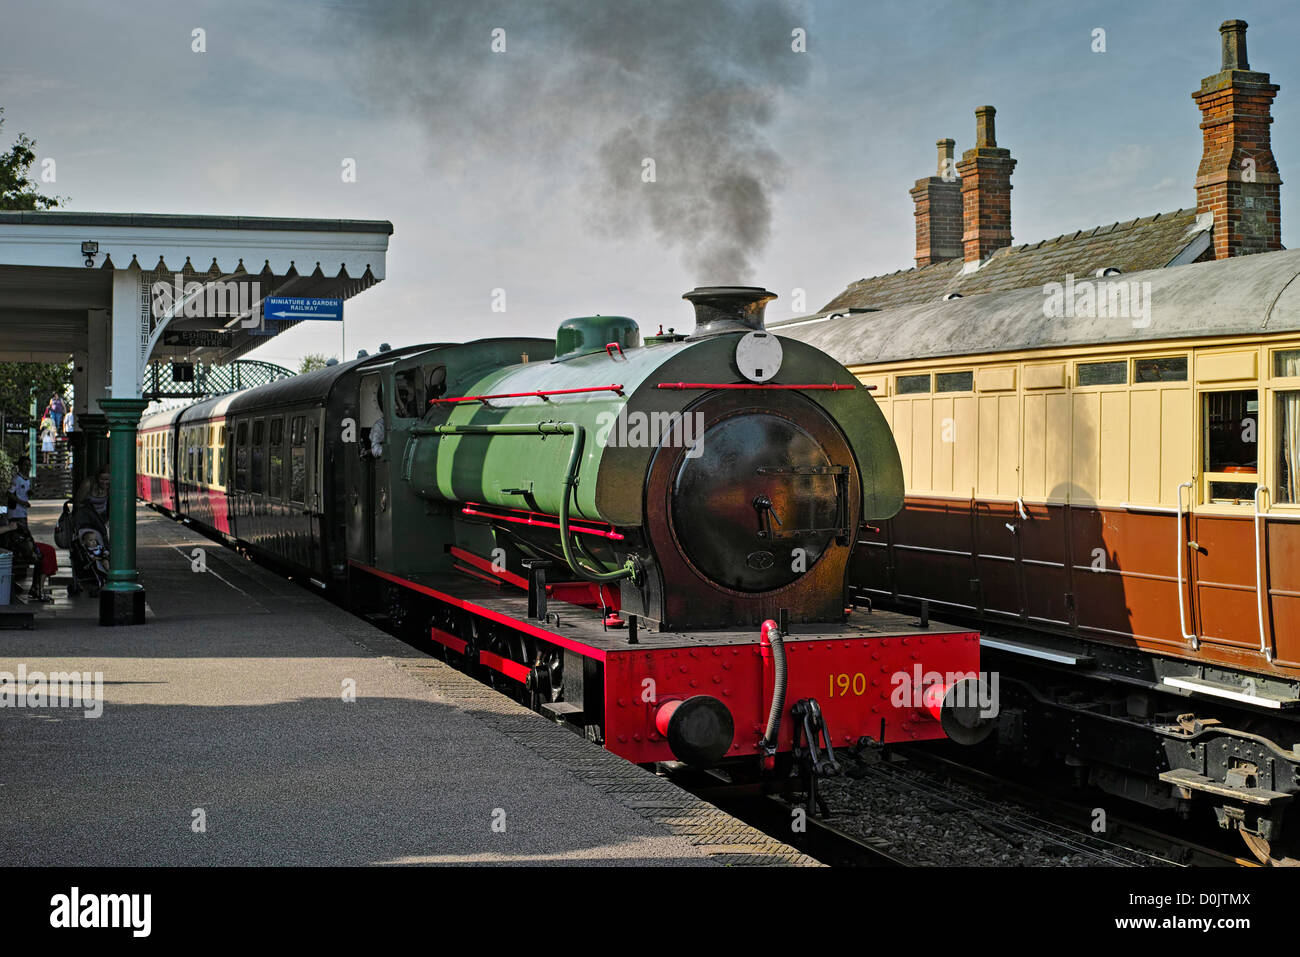 A steam train on the Colne Valley and Halstead railway. - Stock Image